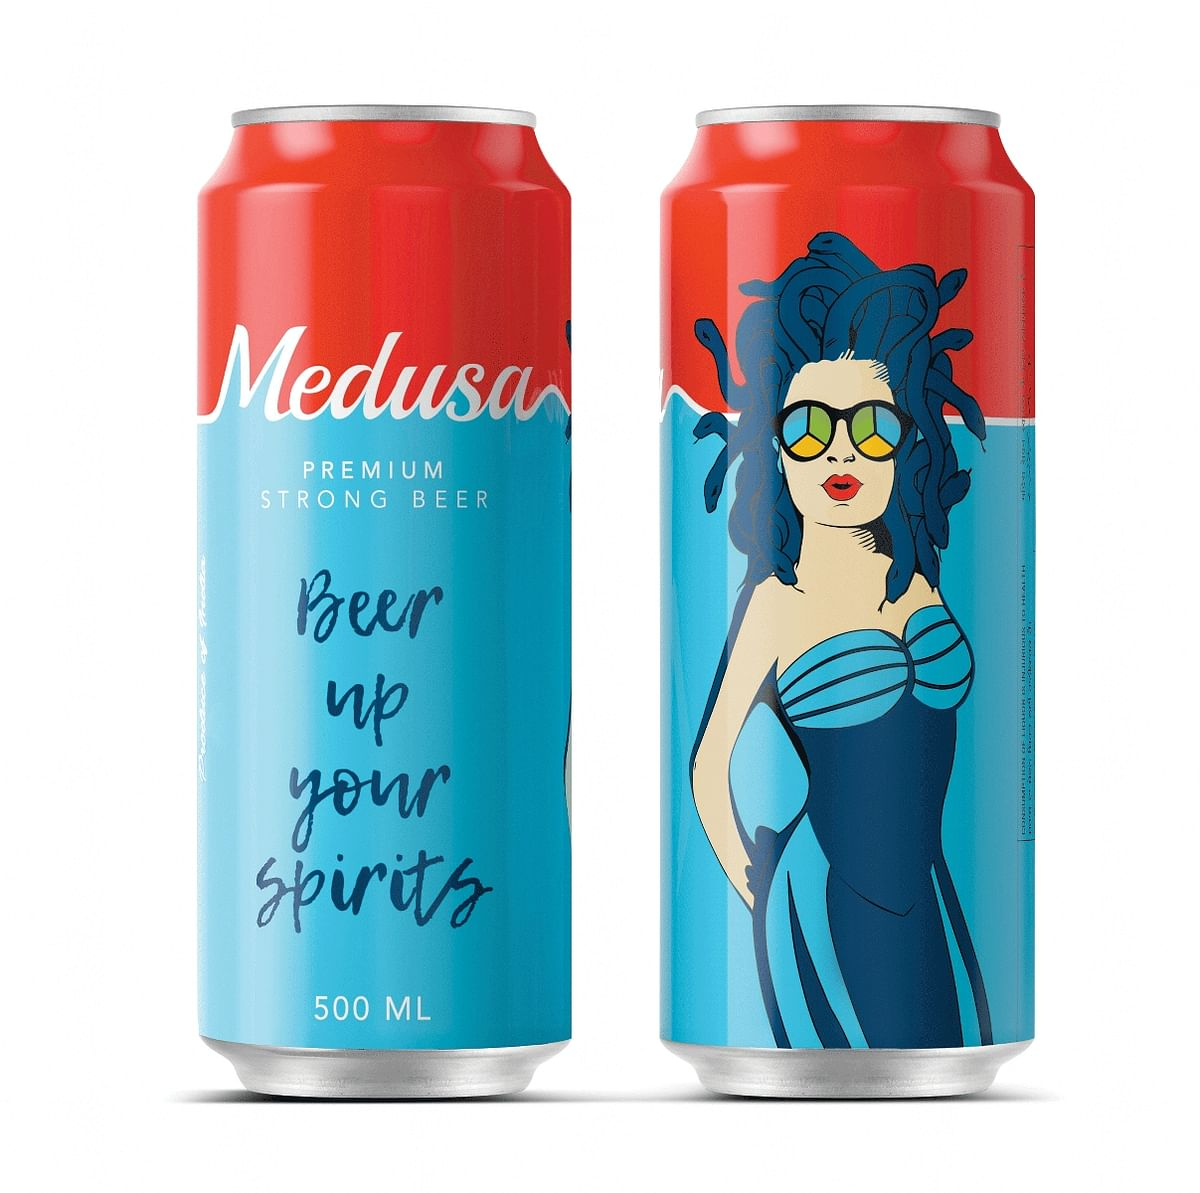 Medusa Beverage - A journey from a startup to 150 crore brand